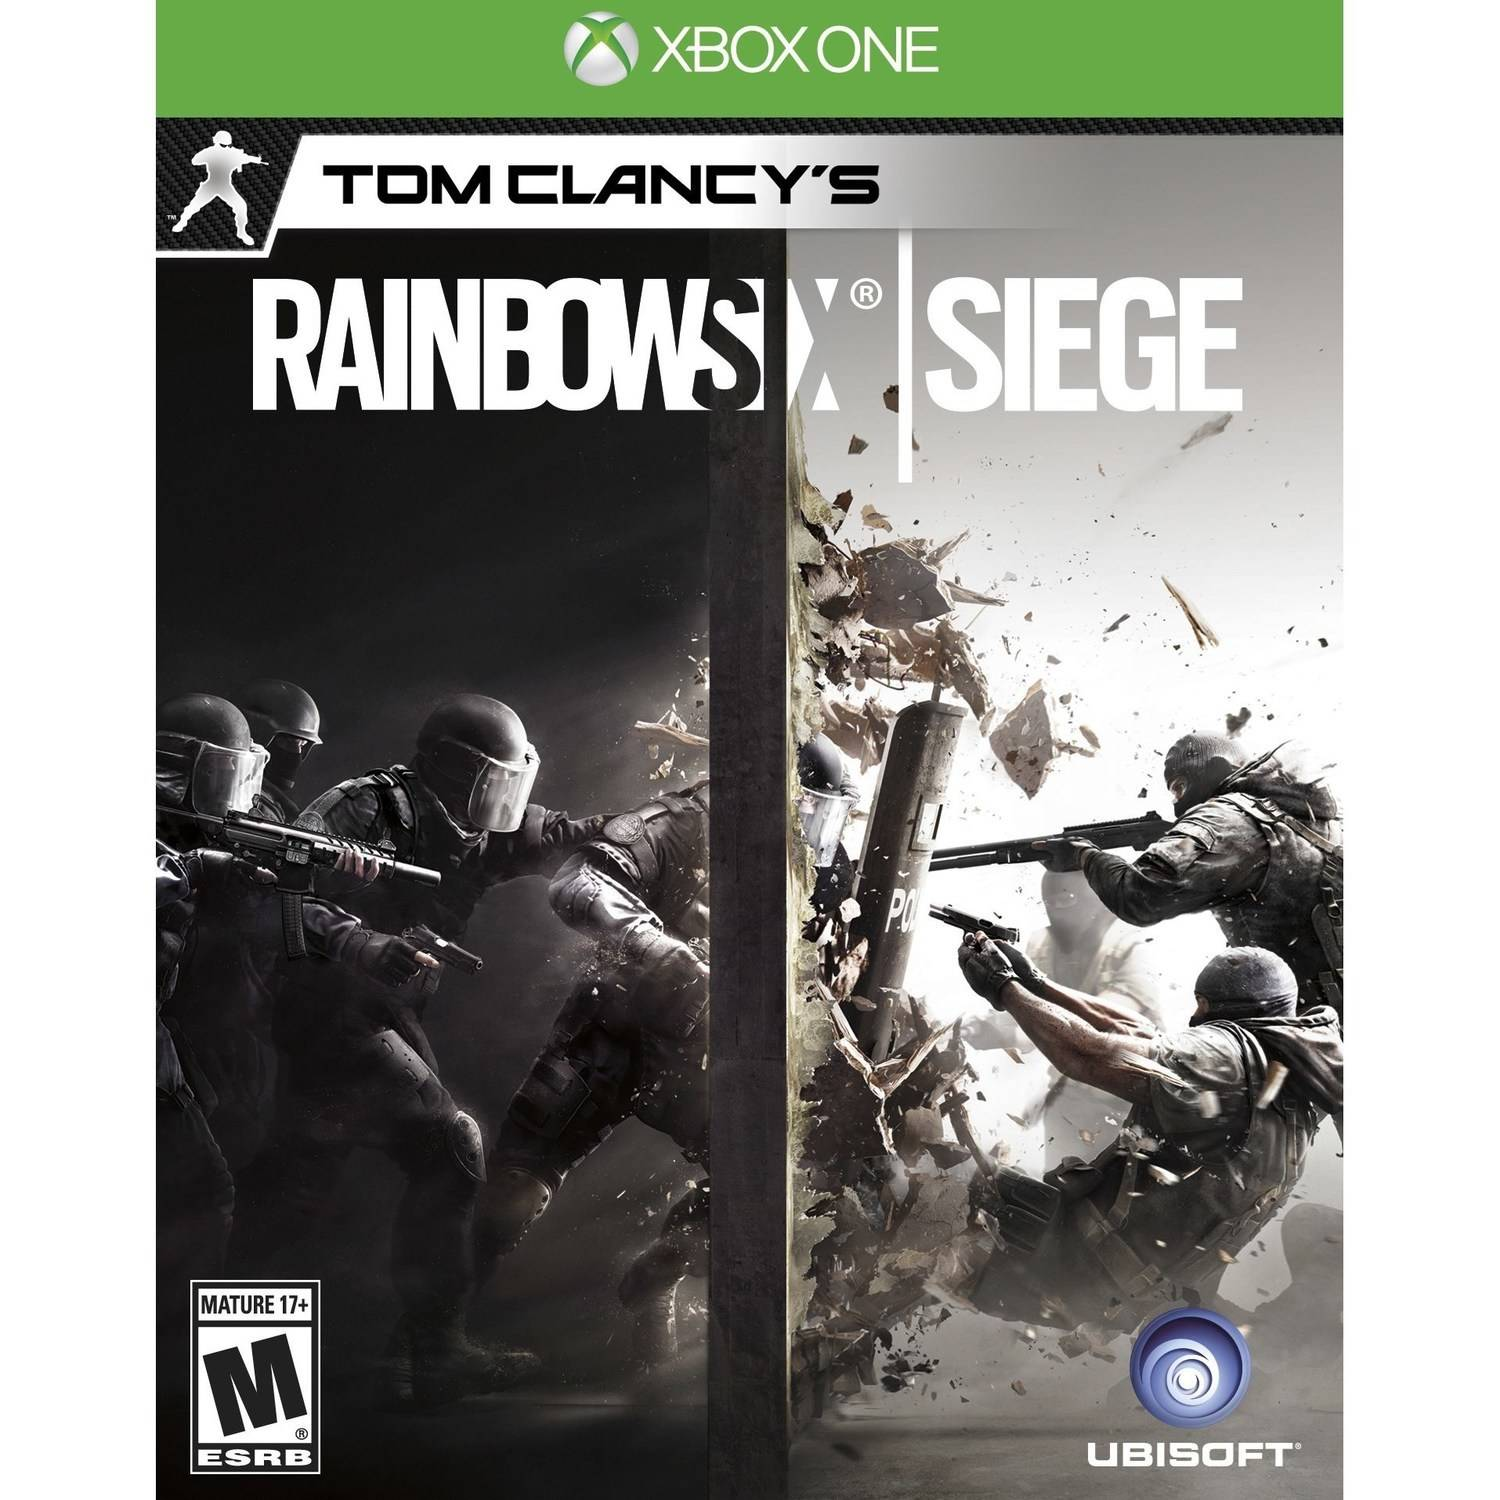 Tom Clancy Rainbow Six Siege (Xbox One)